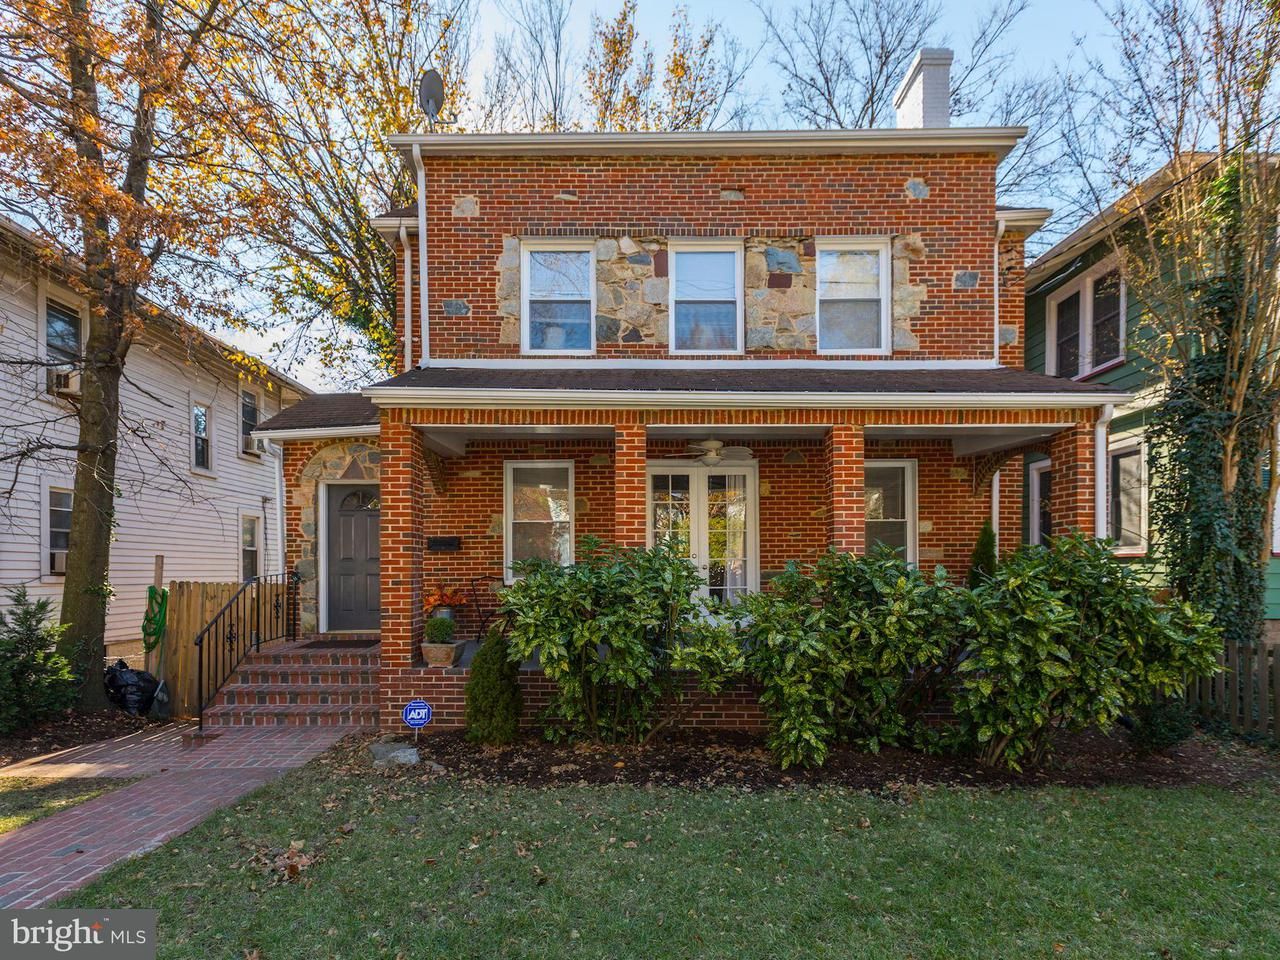 Single Family Home for Sale at 608 WHITTIER ST NW 608 WHITTIER ST NW Washington, District Of Columbia 20012 United States